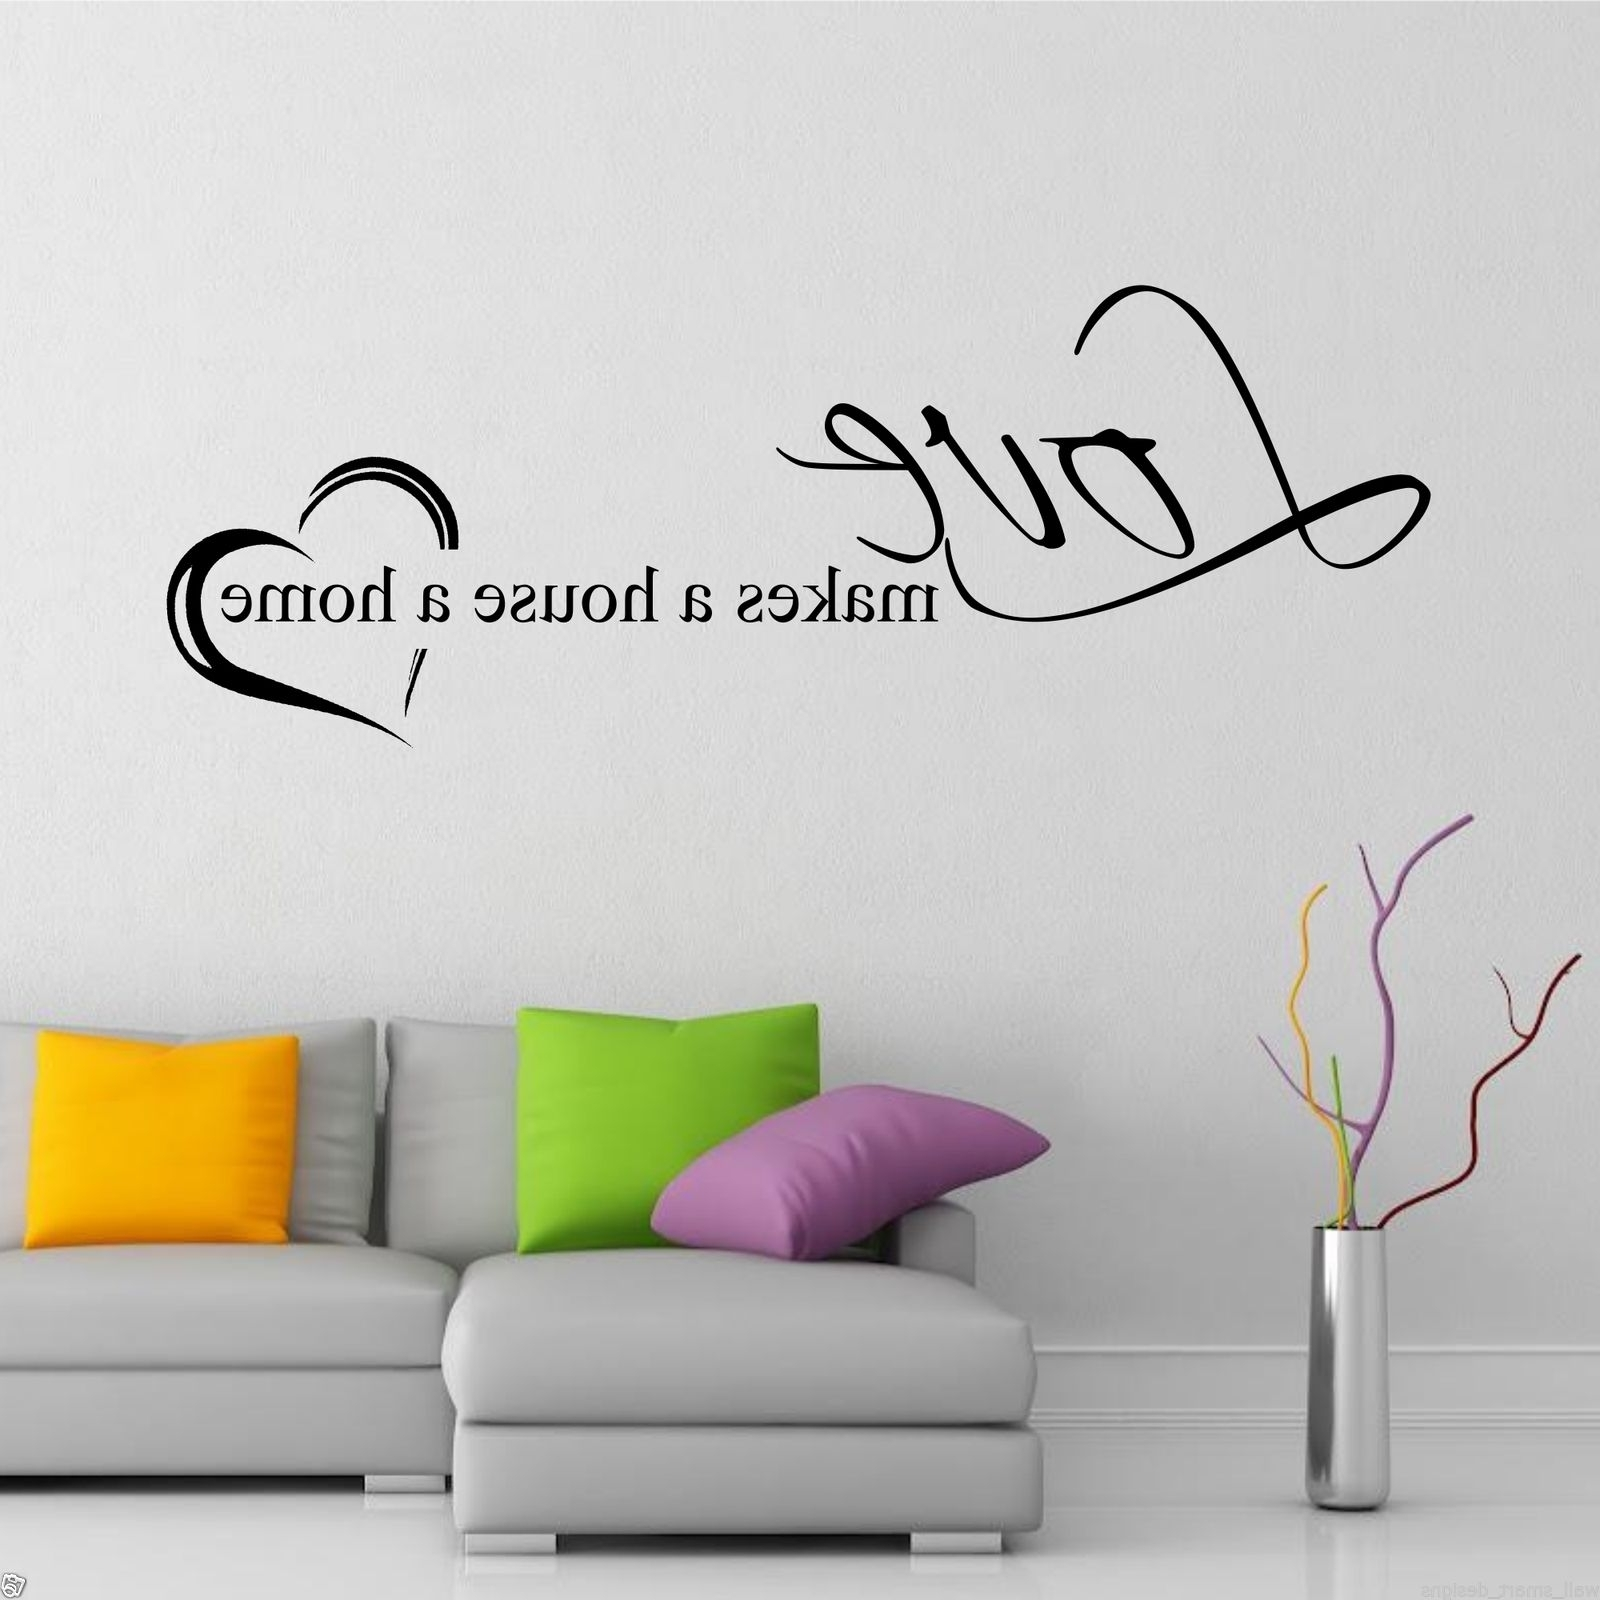 Family Wall Art Intended For 2017 Home Love Family Wall Art Sticker Quote Decal Mural Transfer Graphic (View 4 of 15)